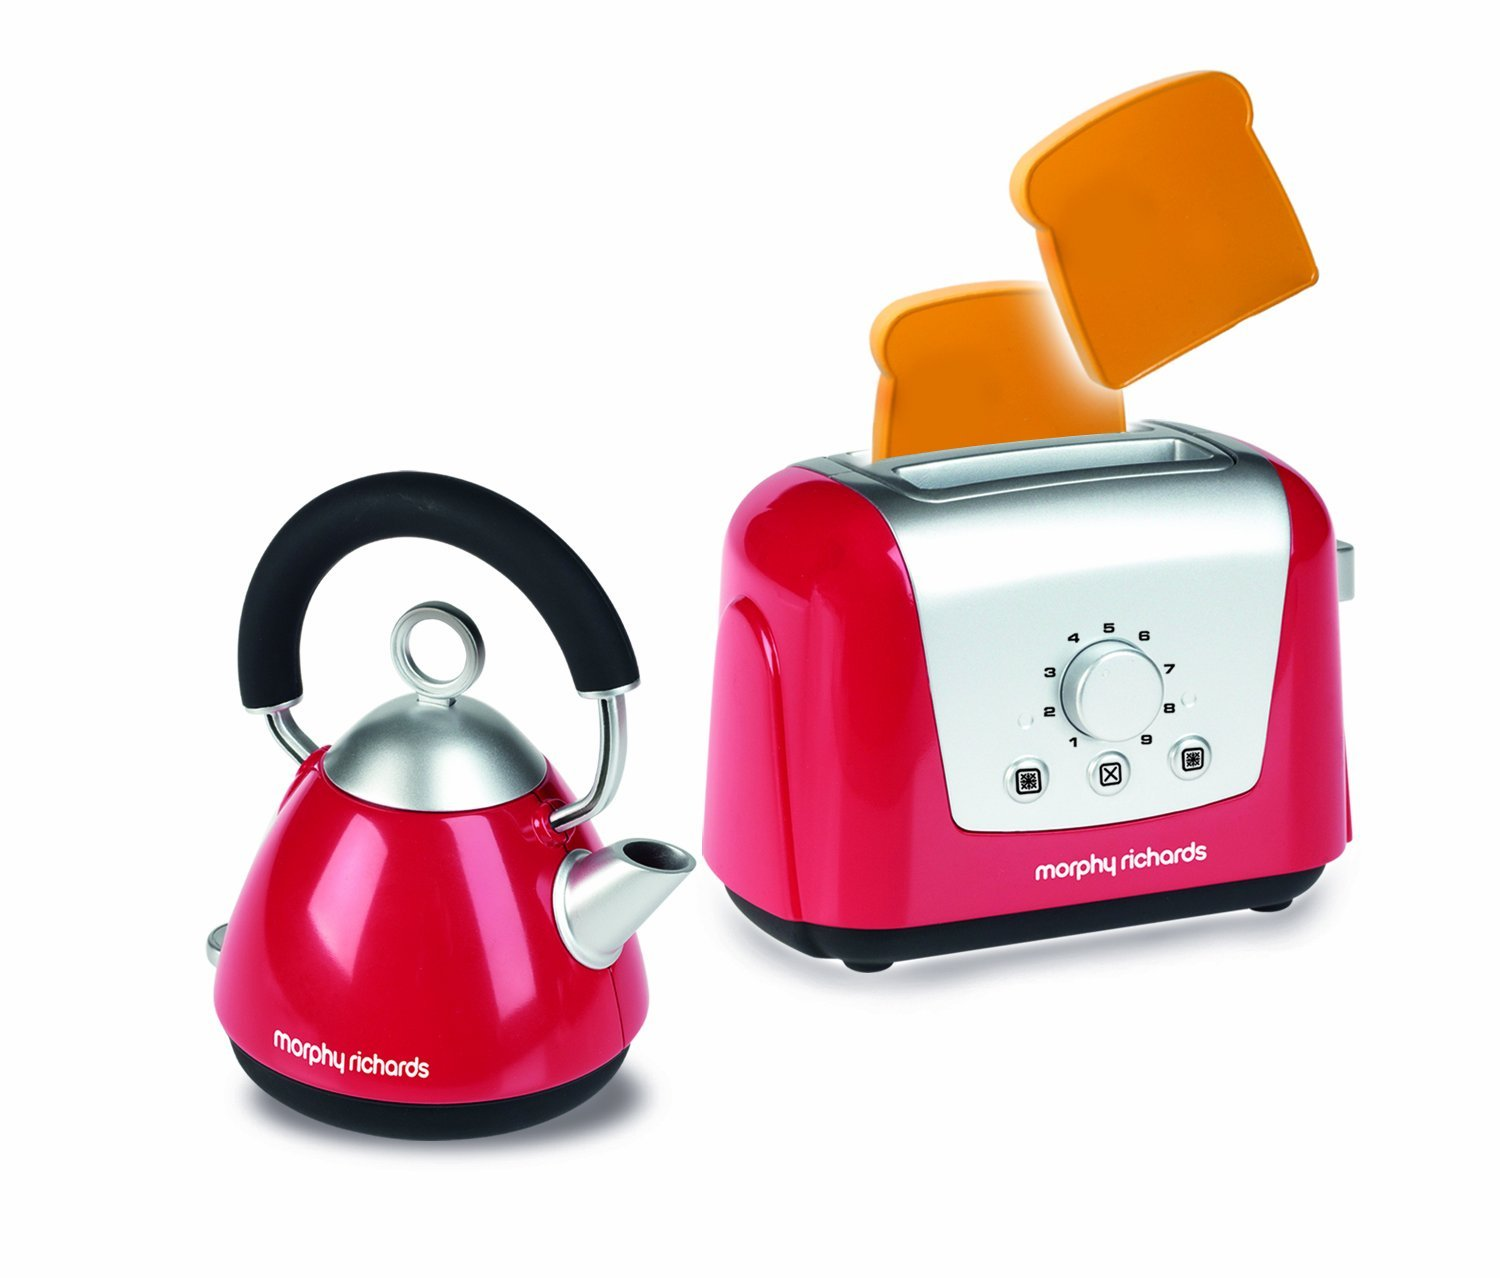 Morphy Richards Kitchen Set: Casdon Morphy Richards Toy Toaster And Kettle Set, Red